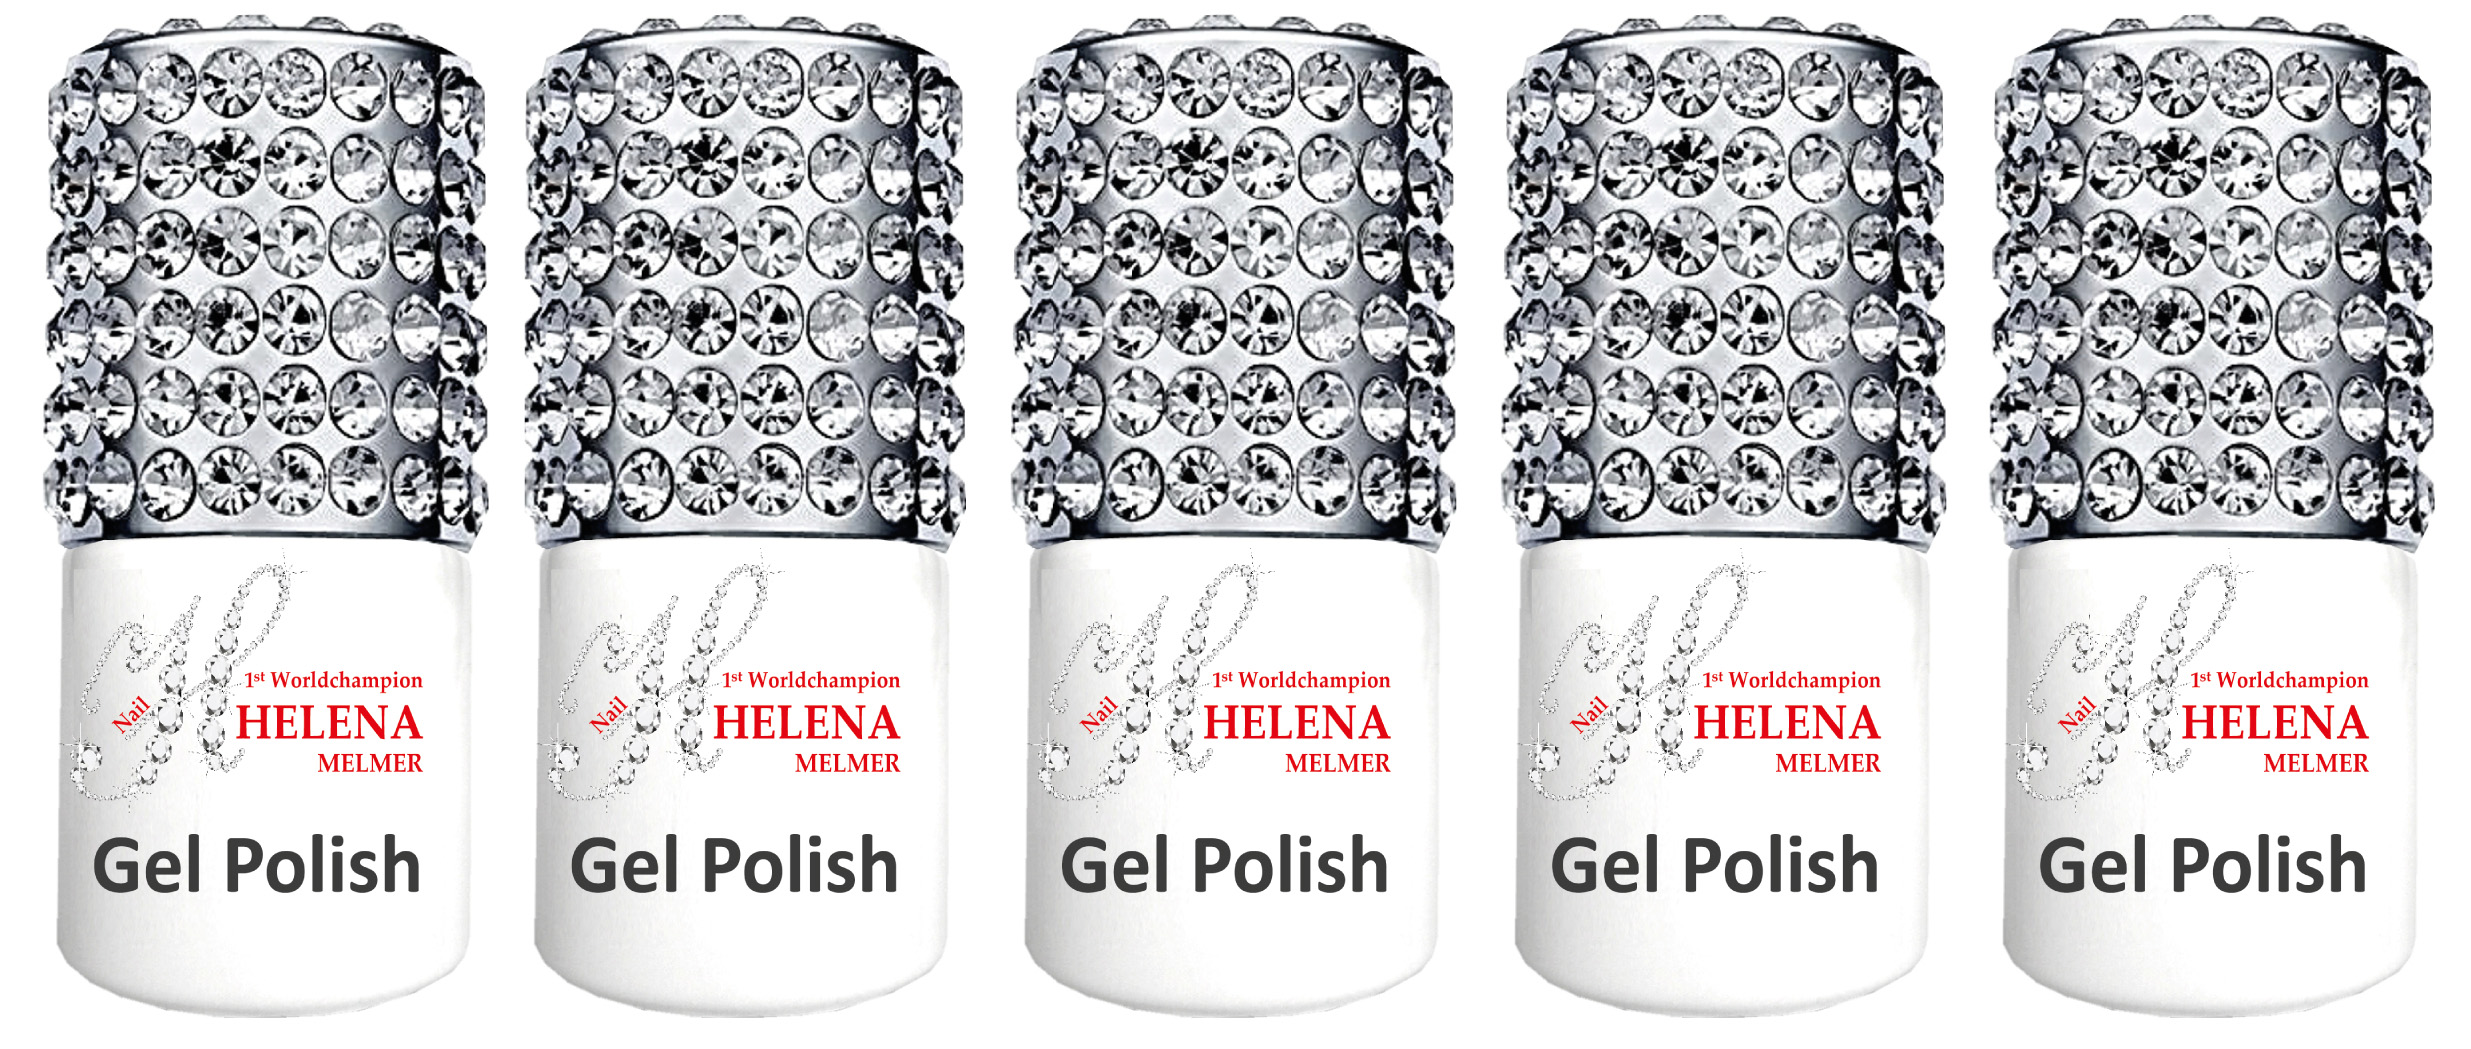 1 Step Gelpolish